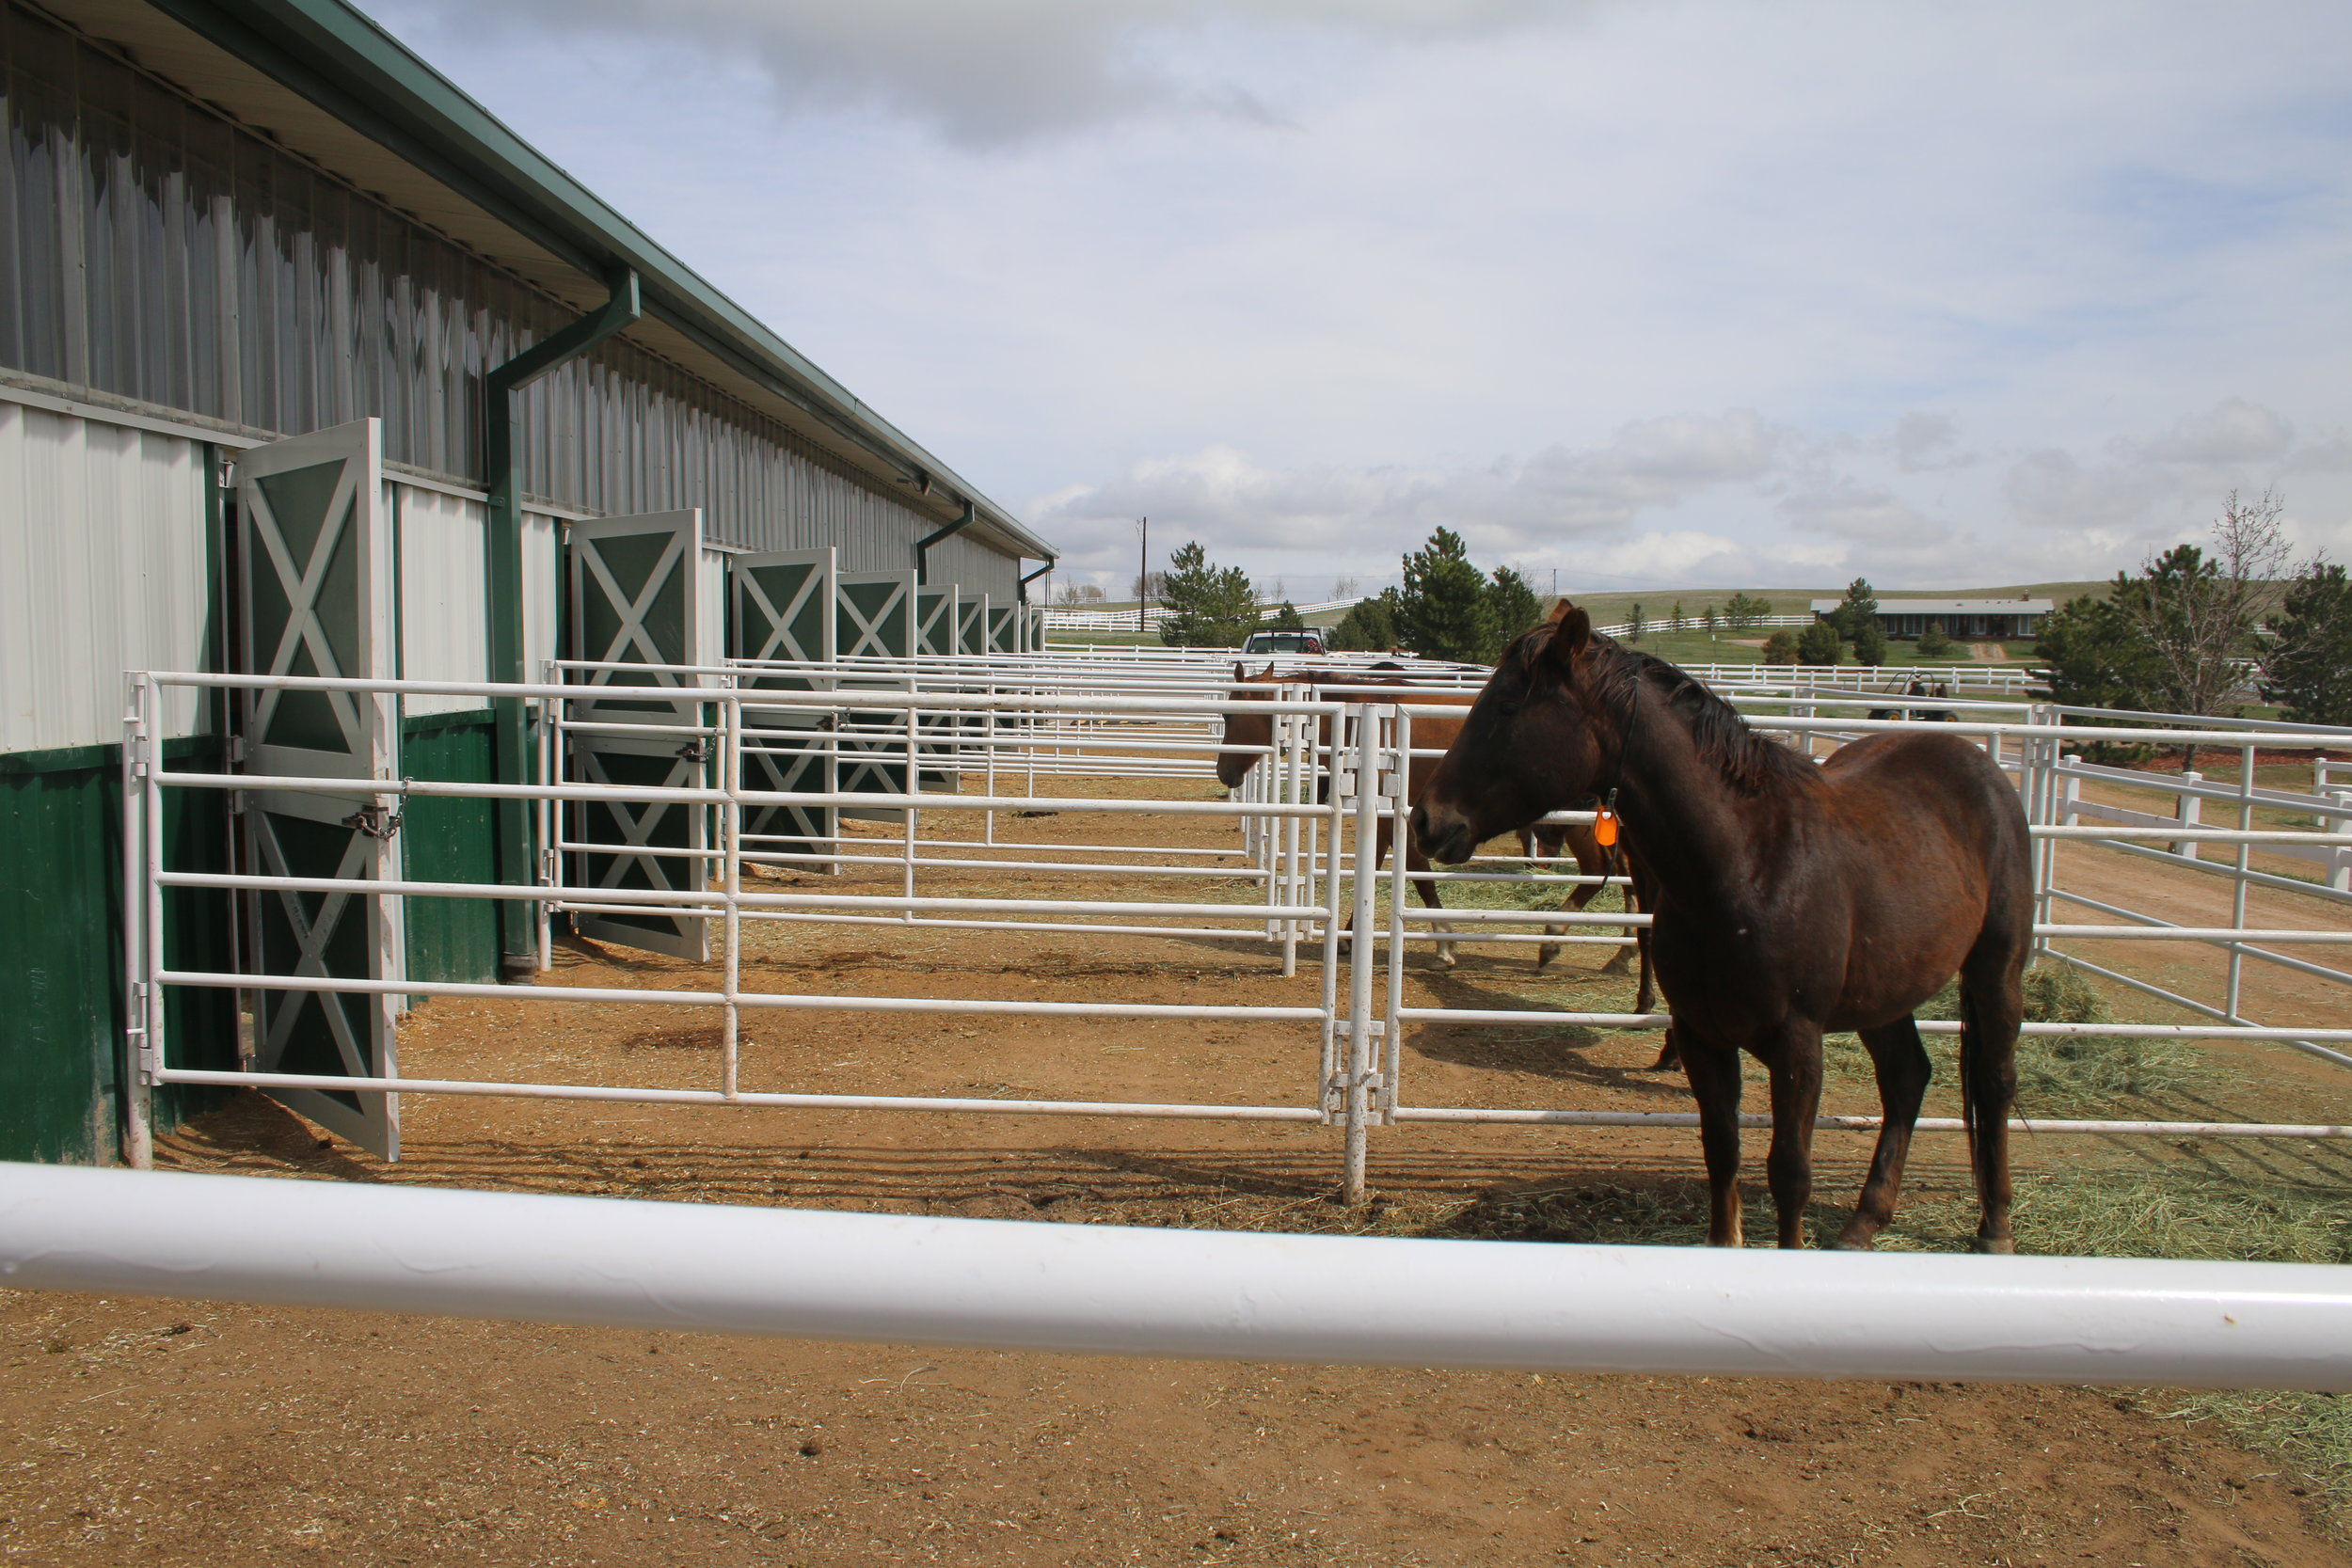 Outdoor paddocks are full at Harmony. Photo by Carrie Dow.